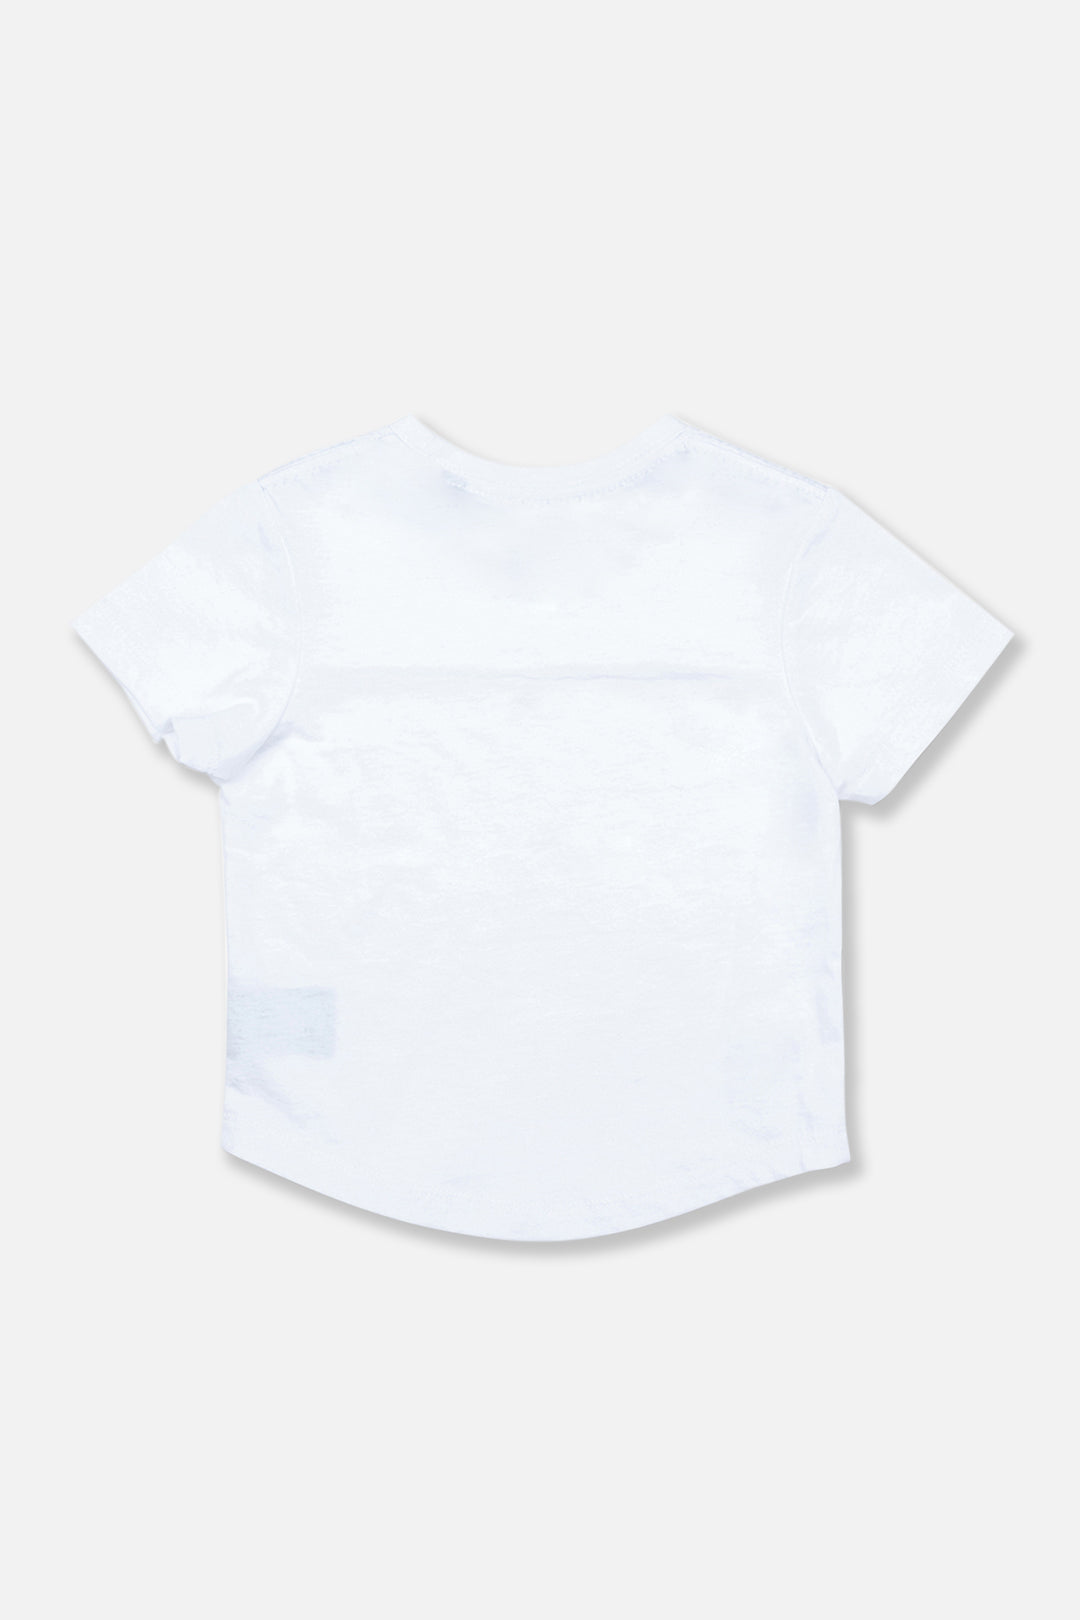 The Nation Tee - White